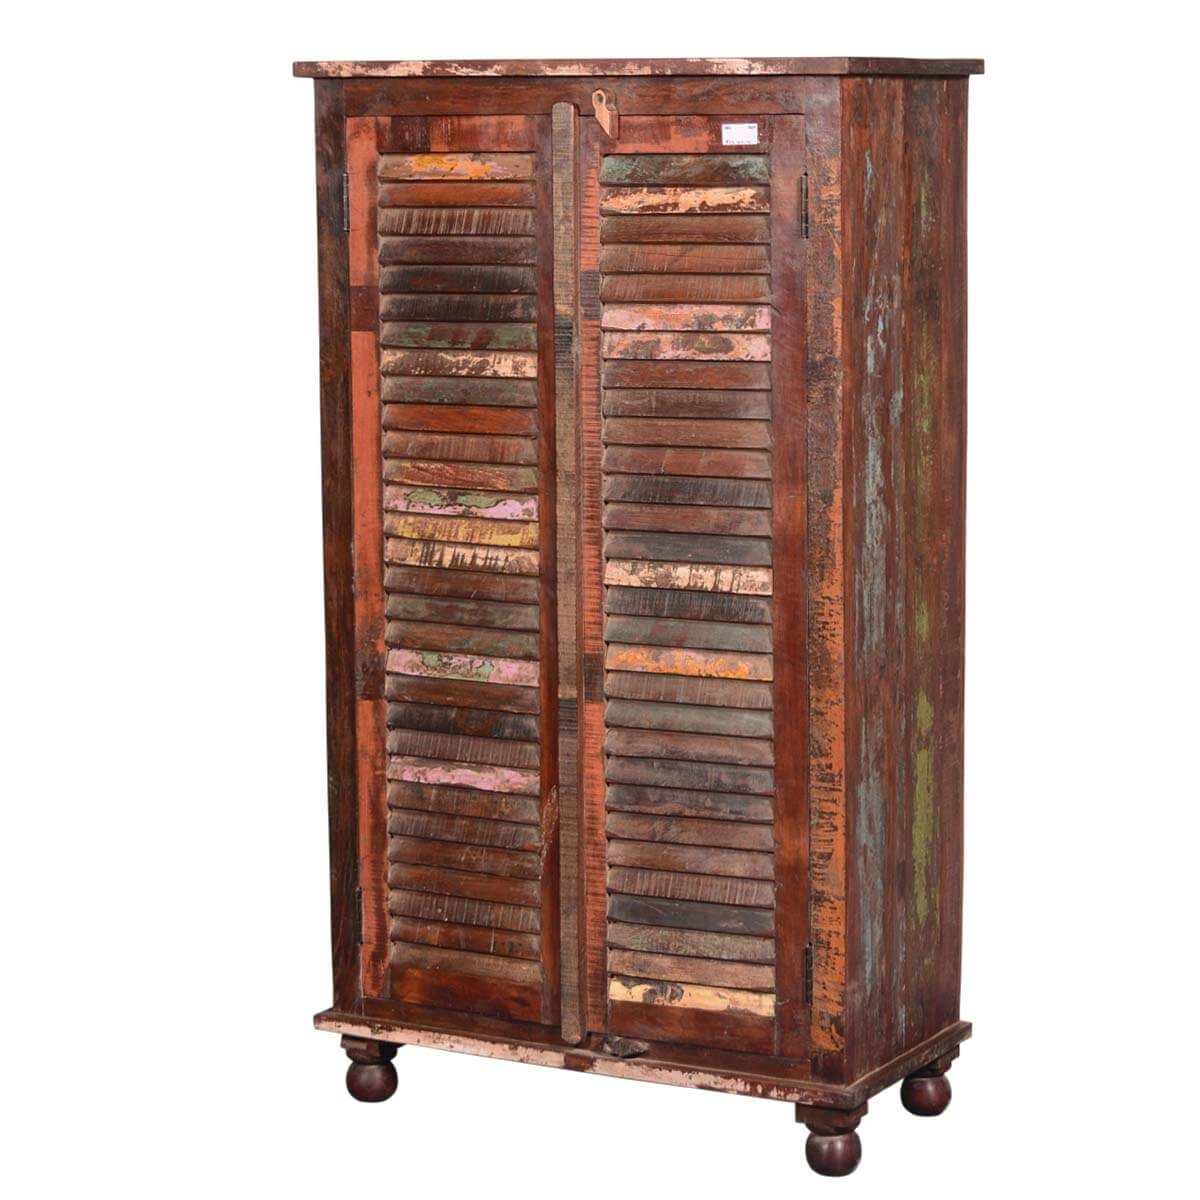 Painted shutter doors reclaimed wood wardrobe armoire cabinet for Wood cabinets